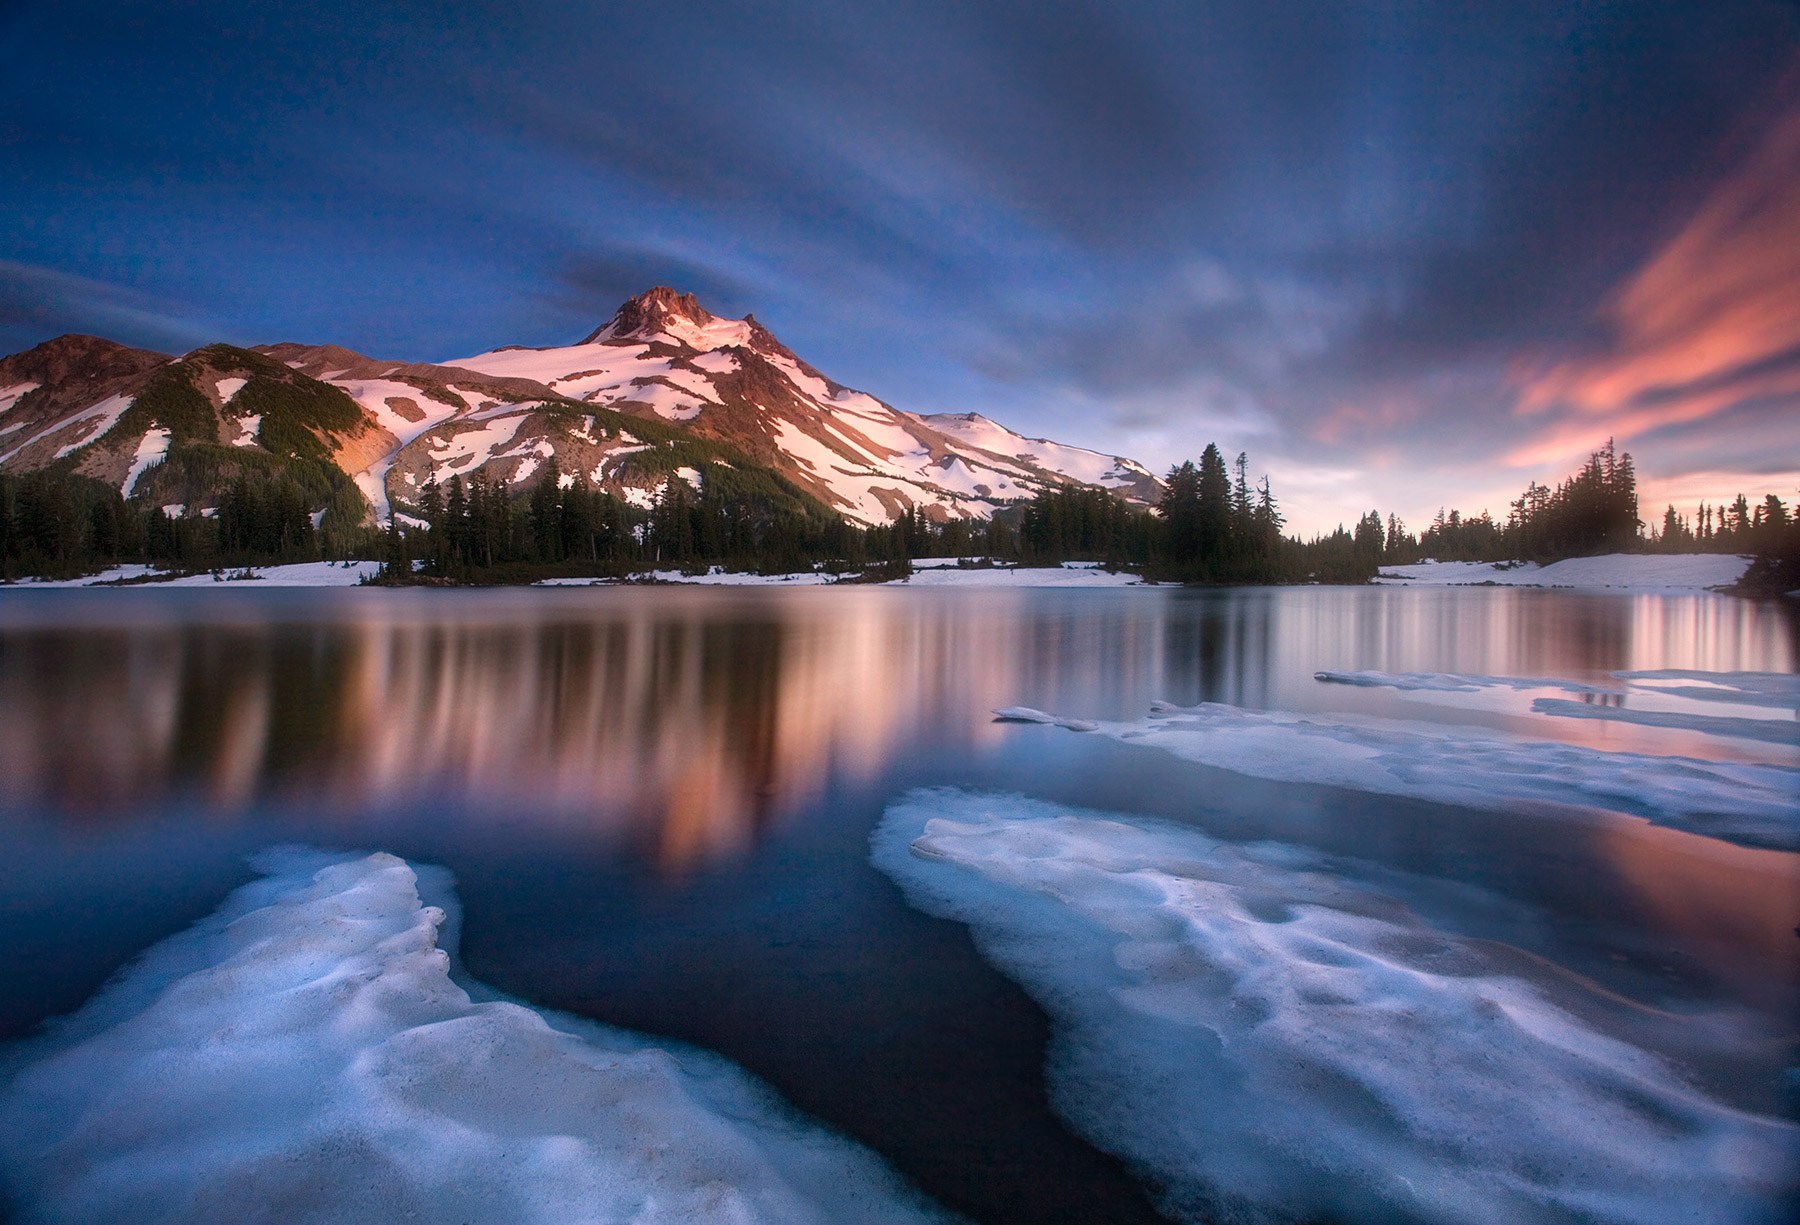 clouds, mount jefferson, long exposure, icy, lake, reflected, oregon, photo